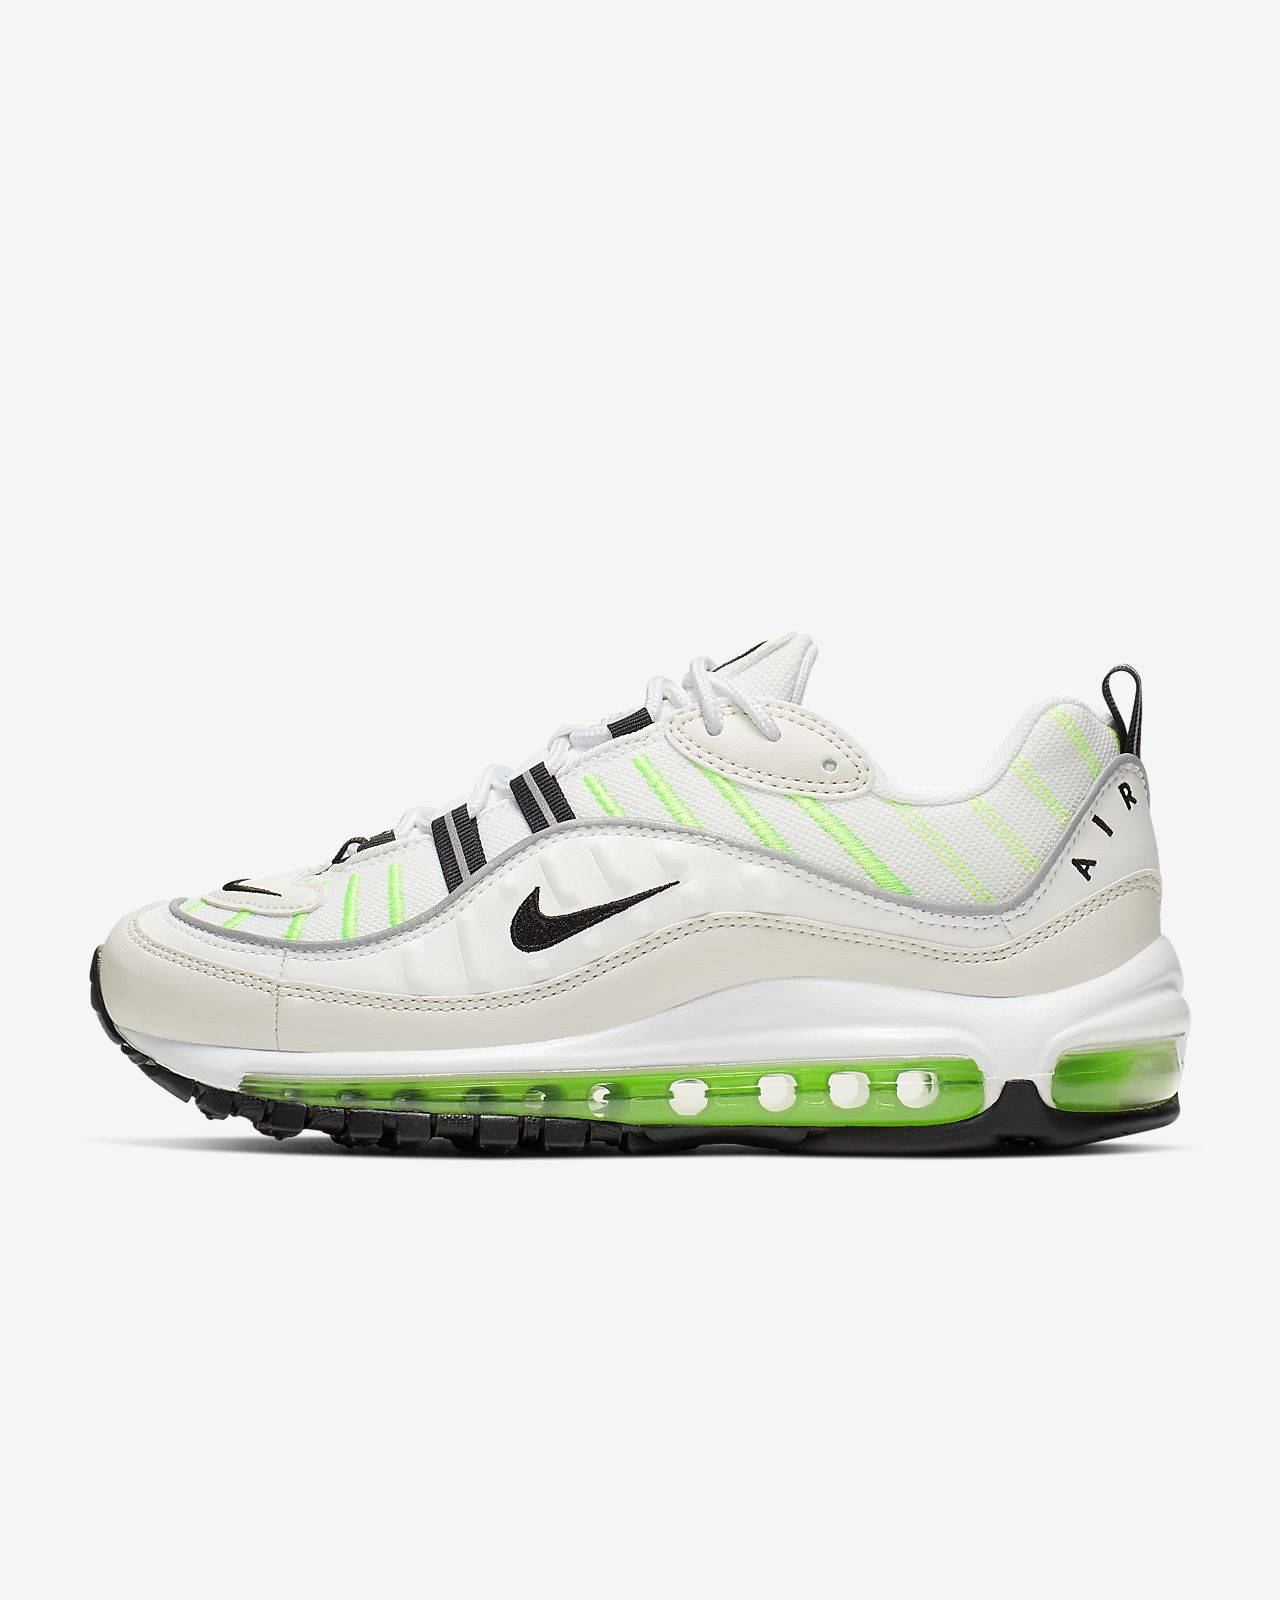 Nike Air max 98 phantom electric green blanc vert AH6799 115